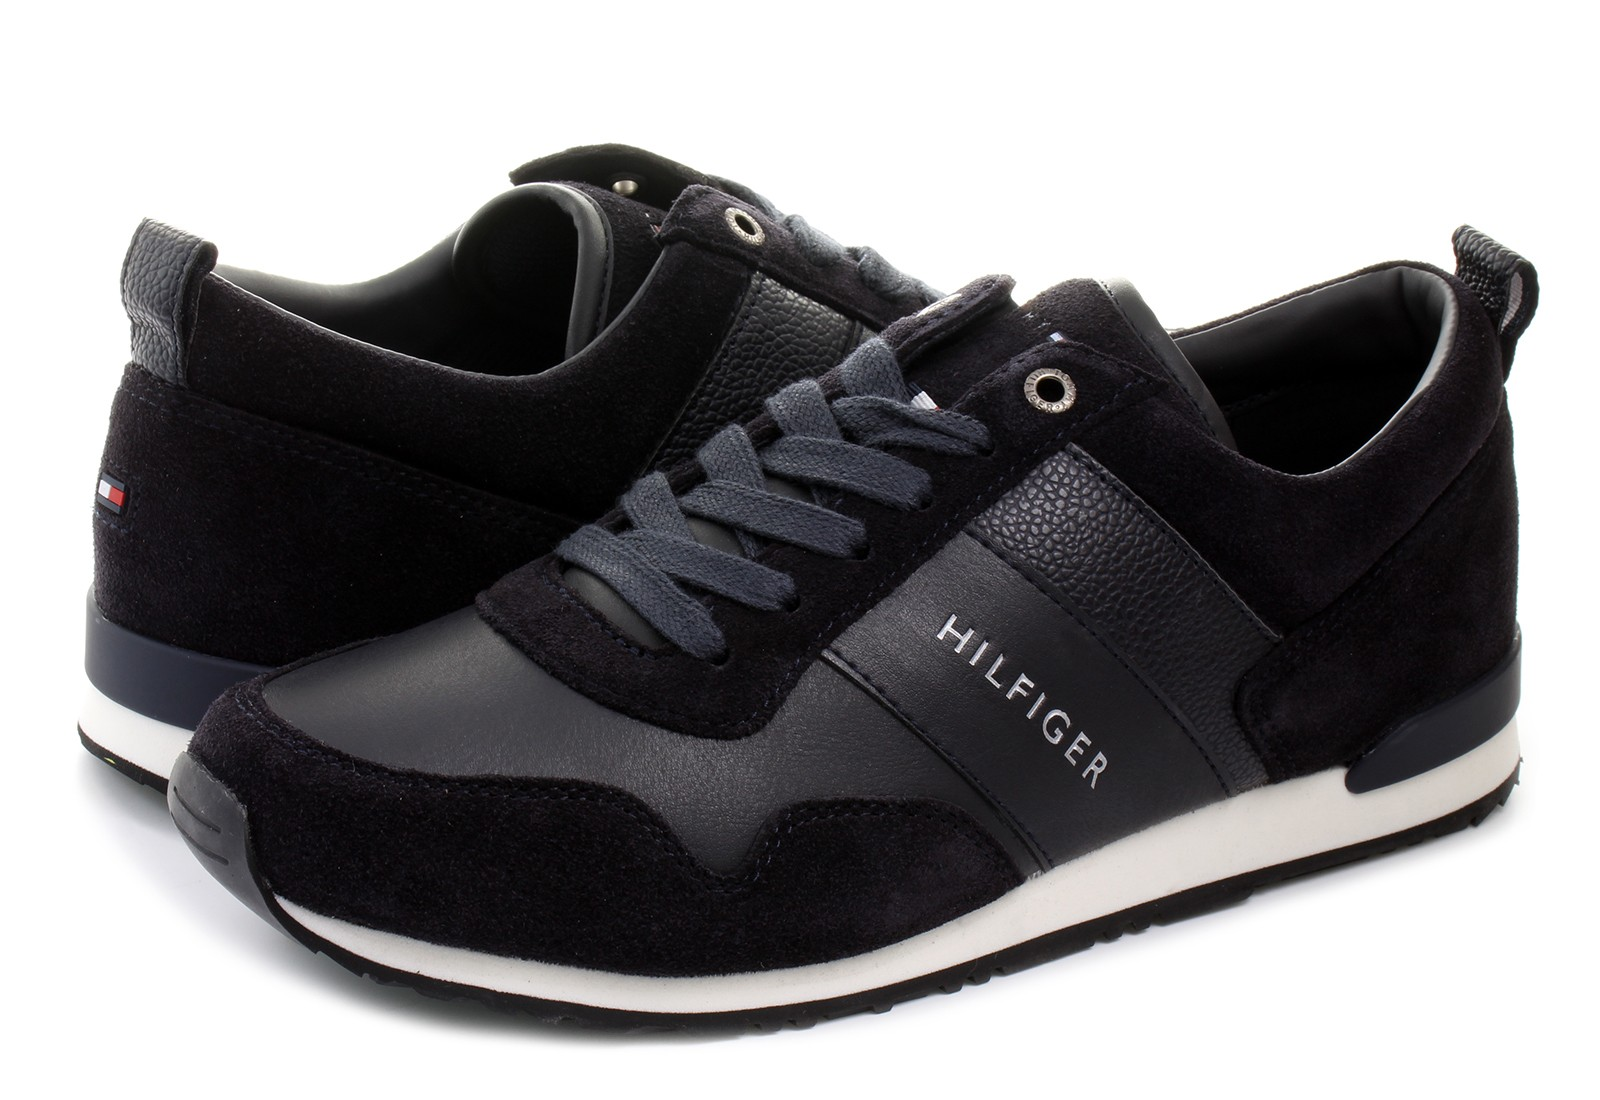 tommy hilfiger shoes maxwell 11c1 17f 0924 403 online shop for sneakers shoes and boots. Black Bedroom Furniture Sets. Home Design Ideas